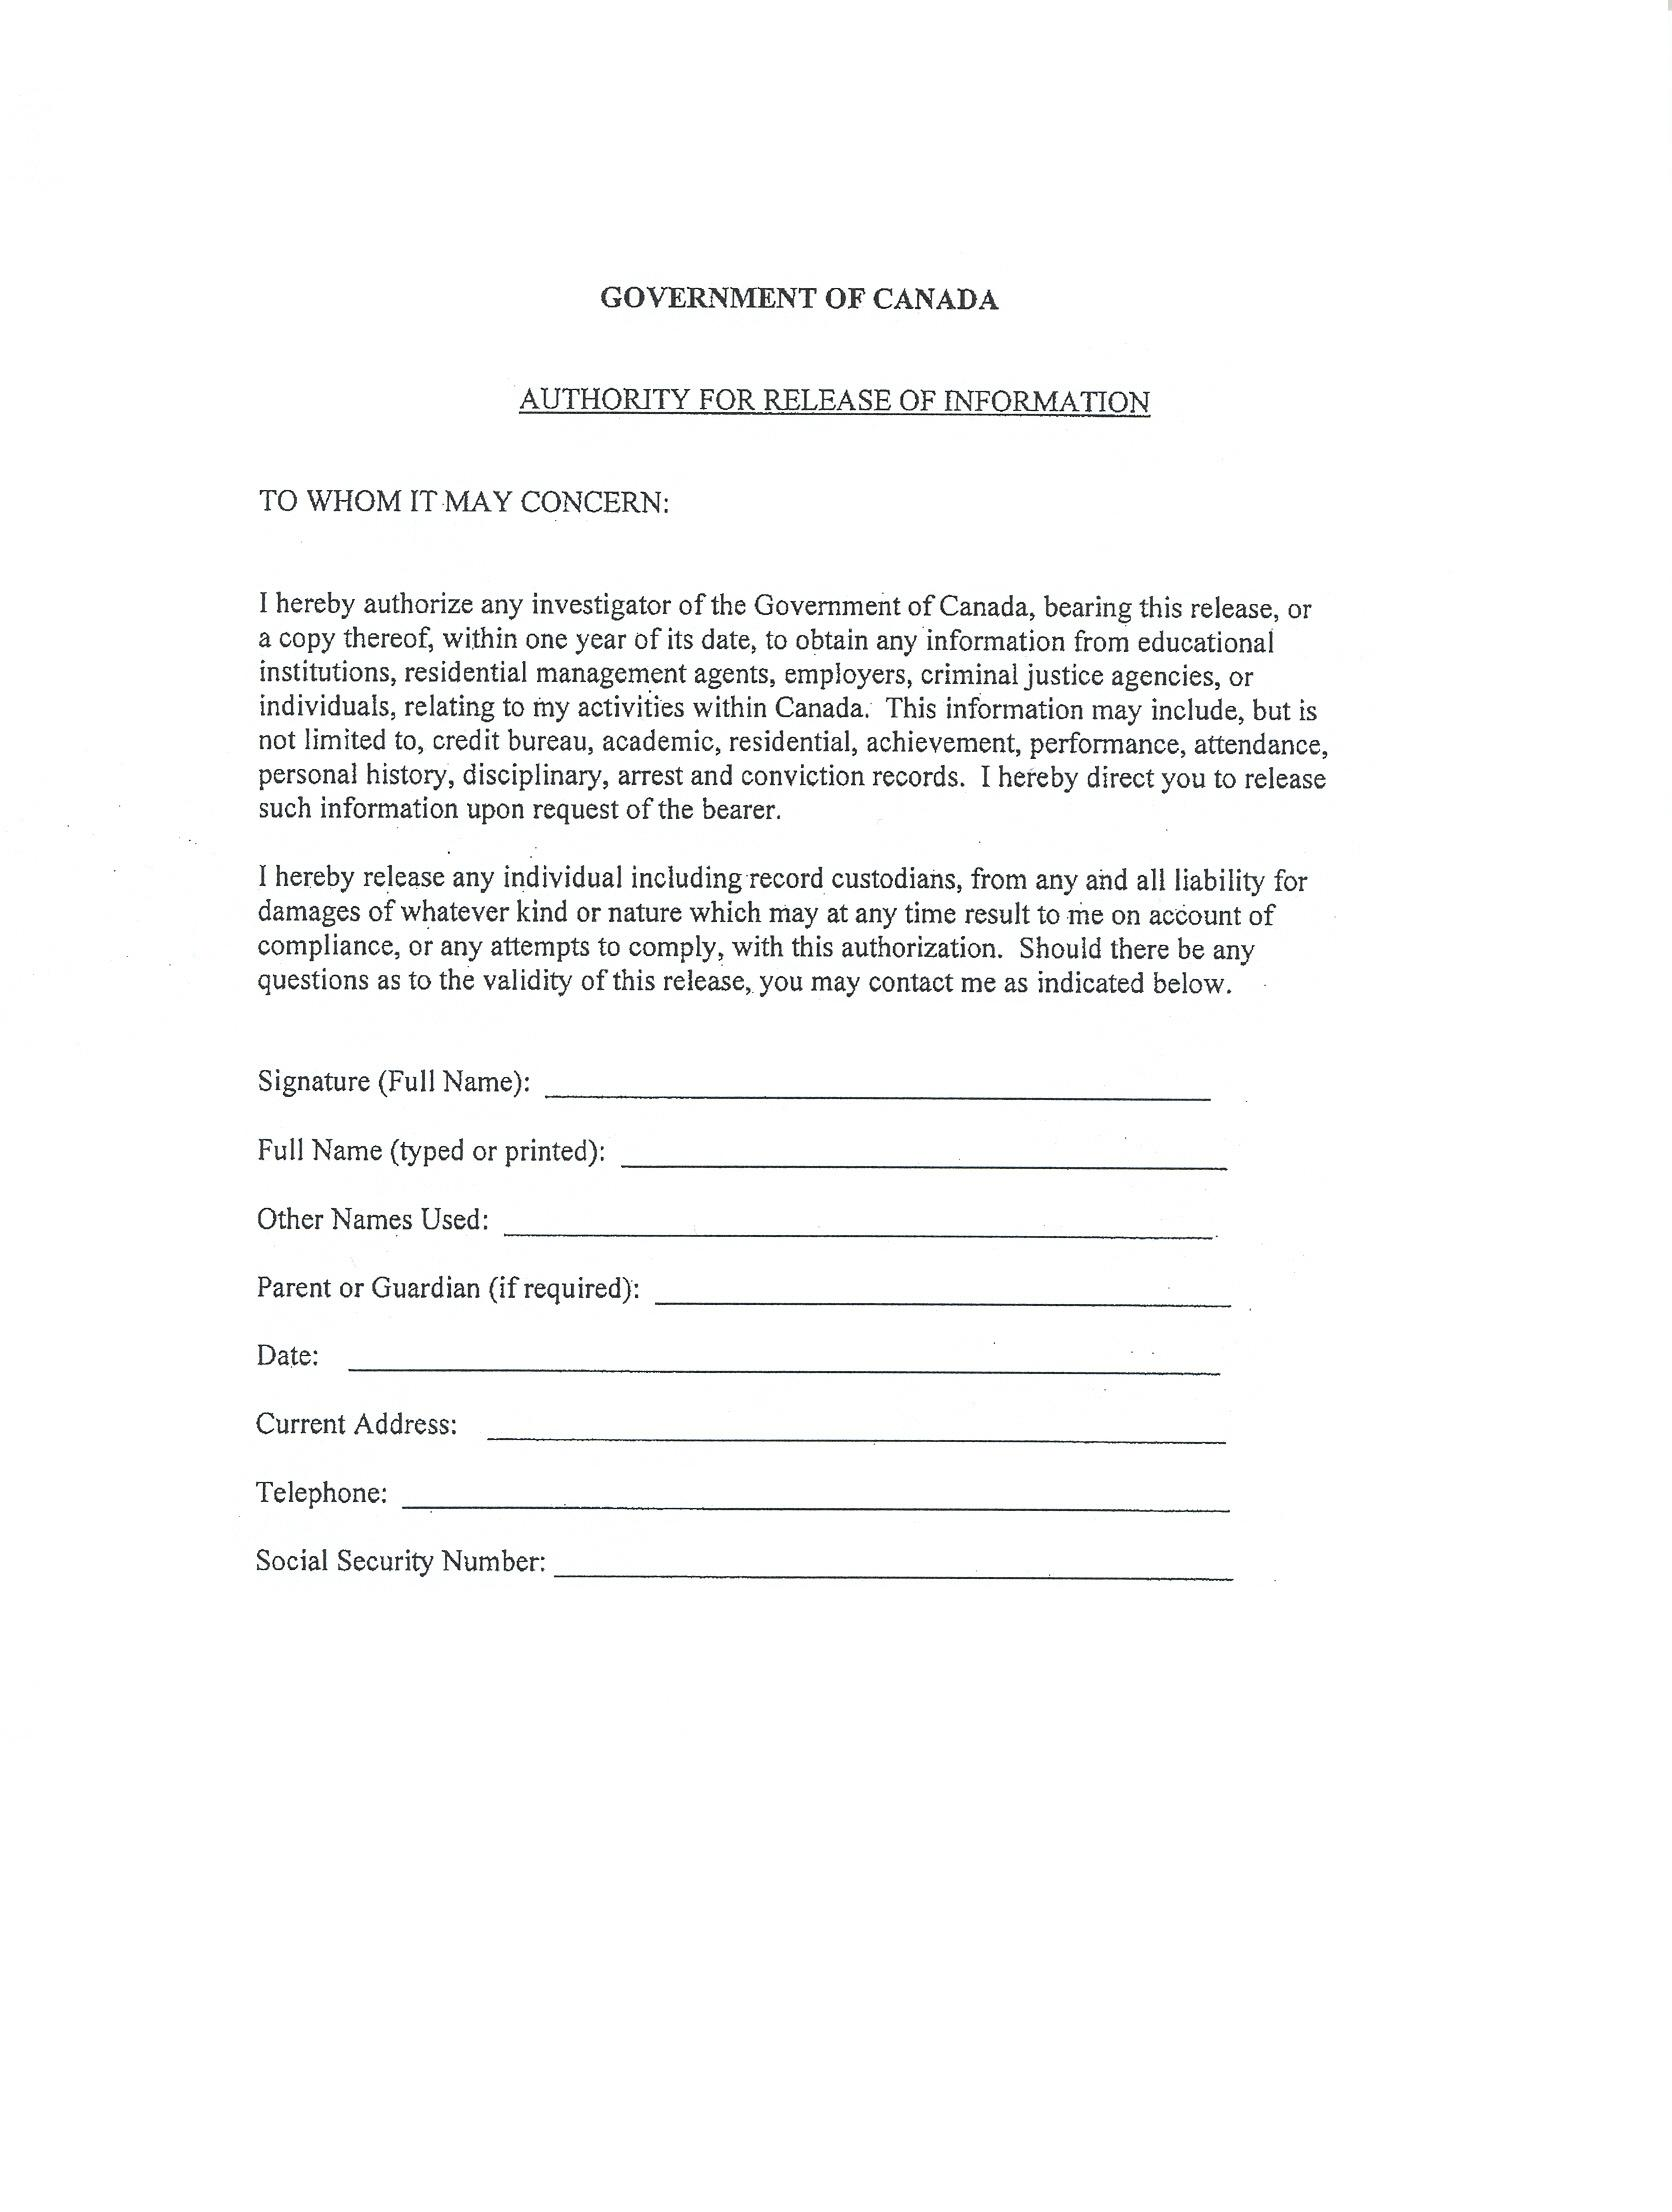 Worksheet Federal Verification Worksheet Grass Fedjp Worksheet Study Site